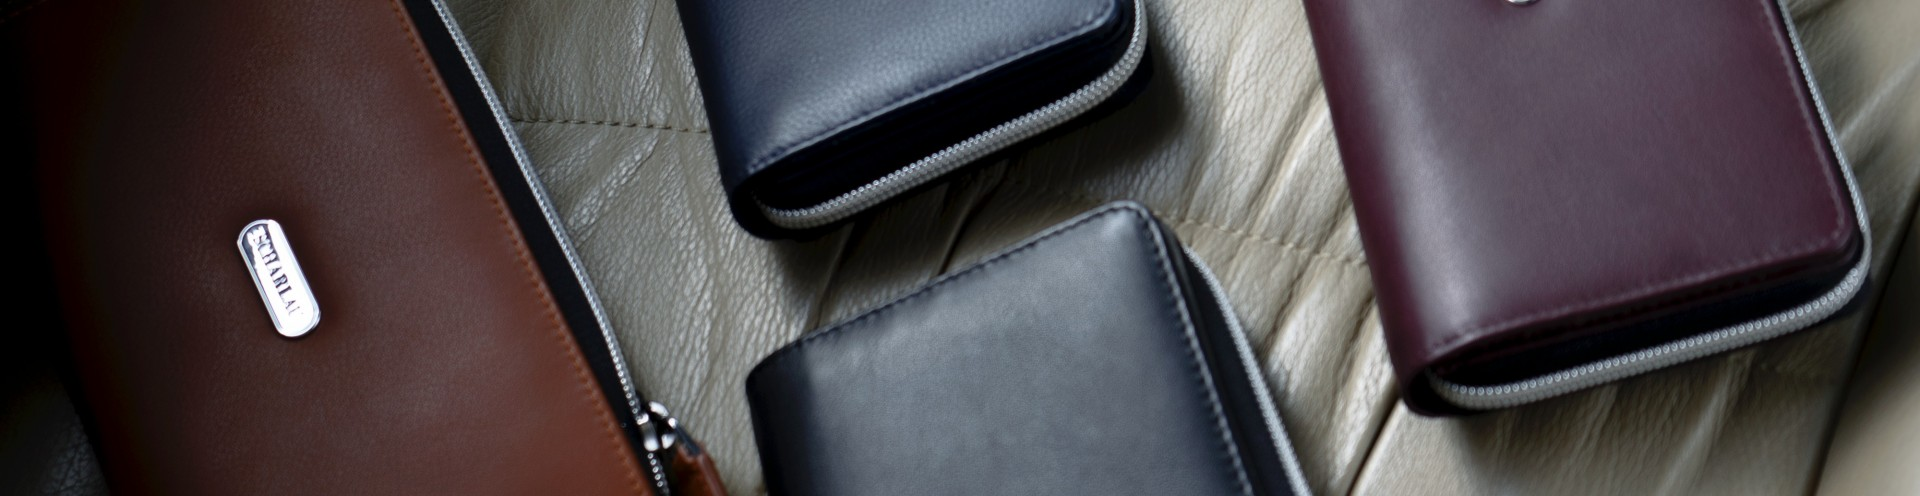 Elegant Wallets and Card Holders for Men and Women